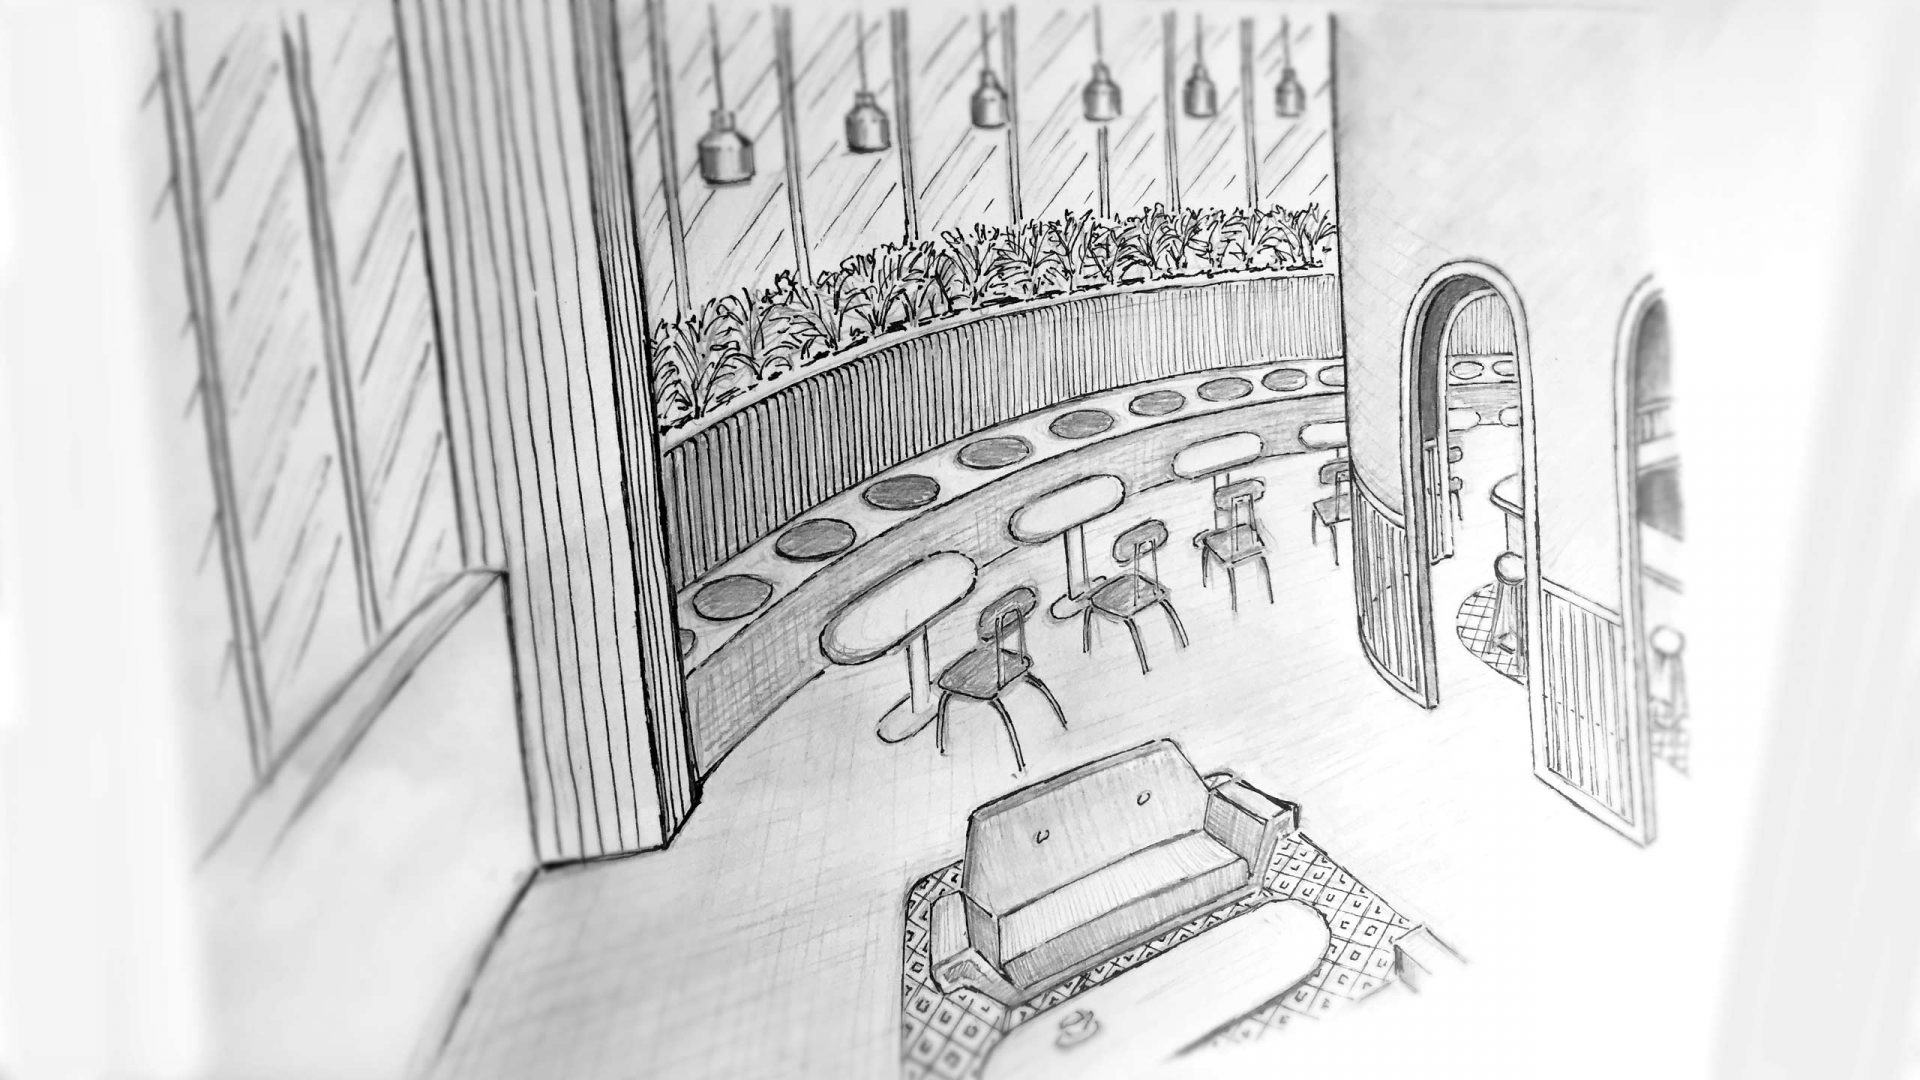 Brew92 Coffee Shop, Mecca by Liqui. Sketch of the ground floor level.